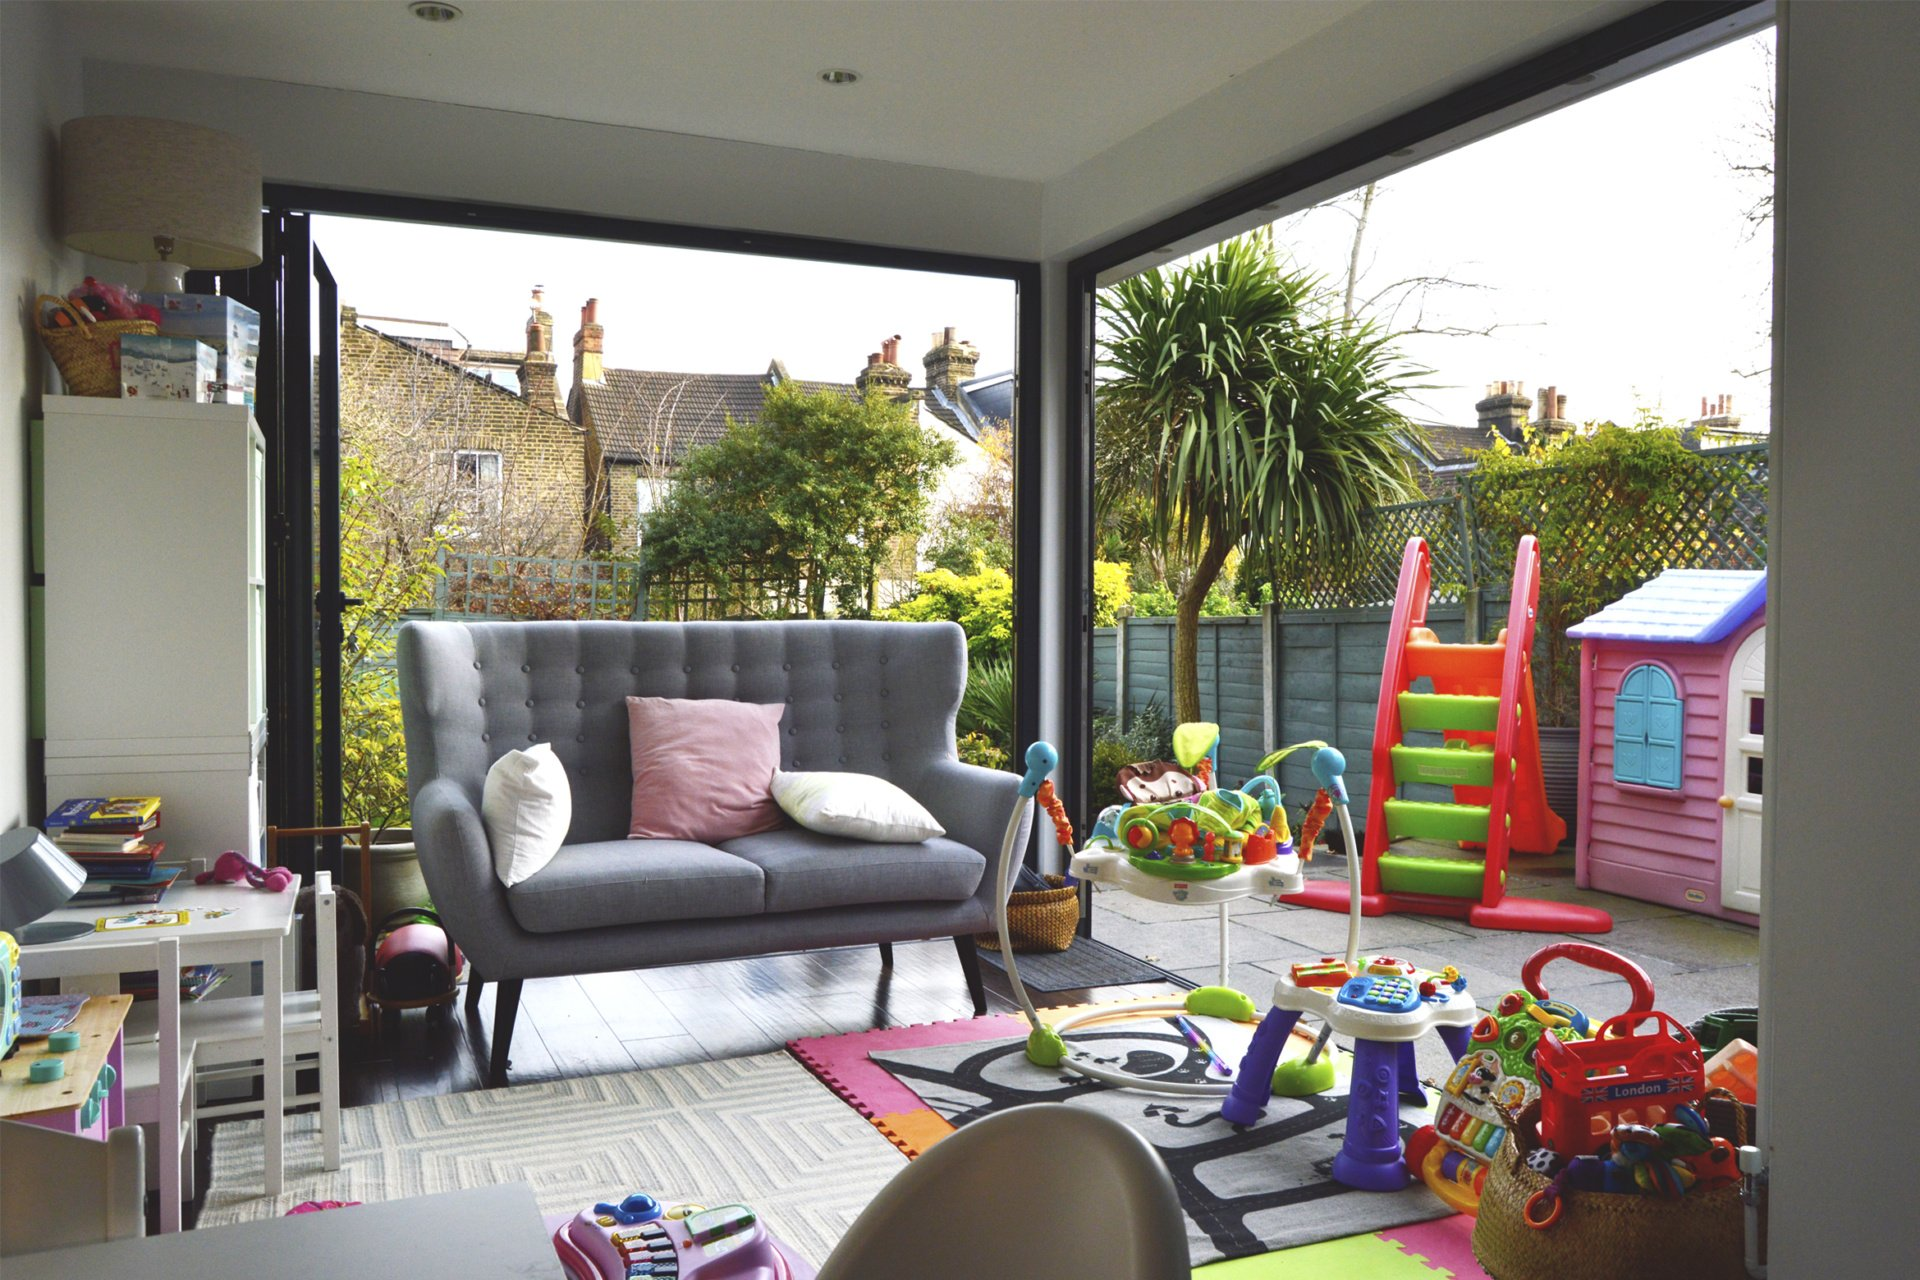 Architect designed rear house extension Penge east Bromley SE26 View from play area 1 Penge East, Bromley SE26 | Rear house extension